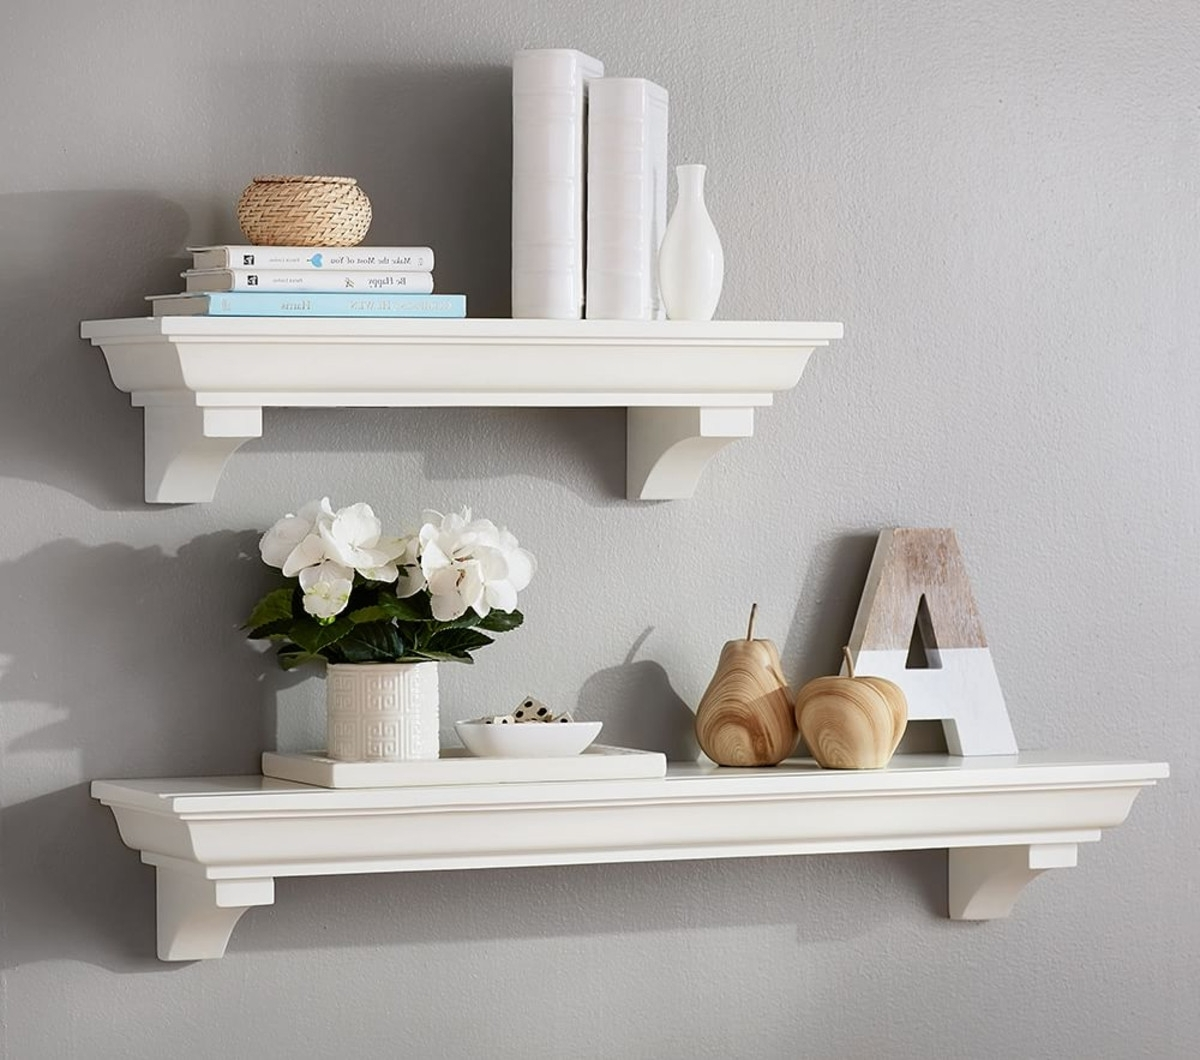 Newest Shelving: Classic Shelves Design. Shelving Furniture (View 10 of 15)